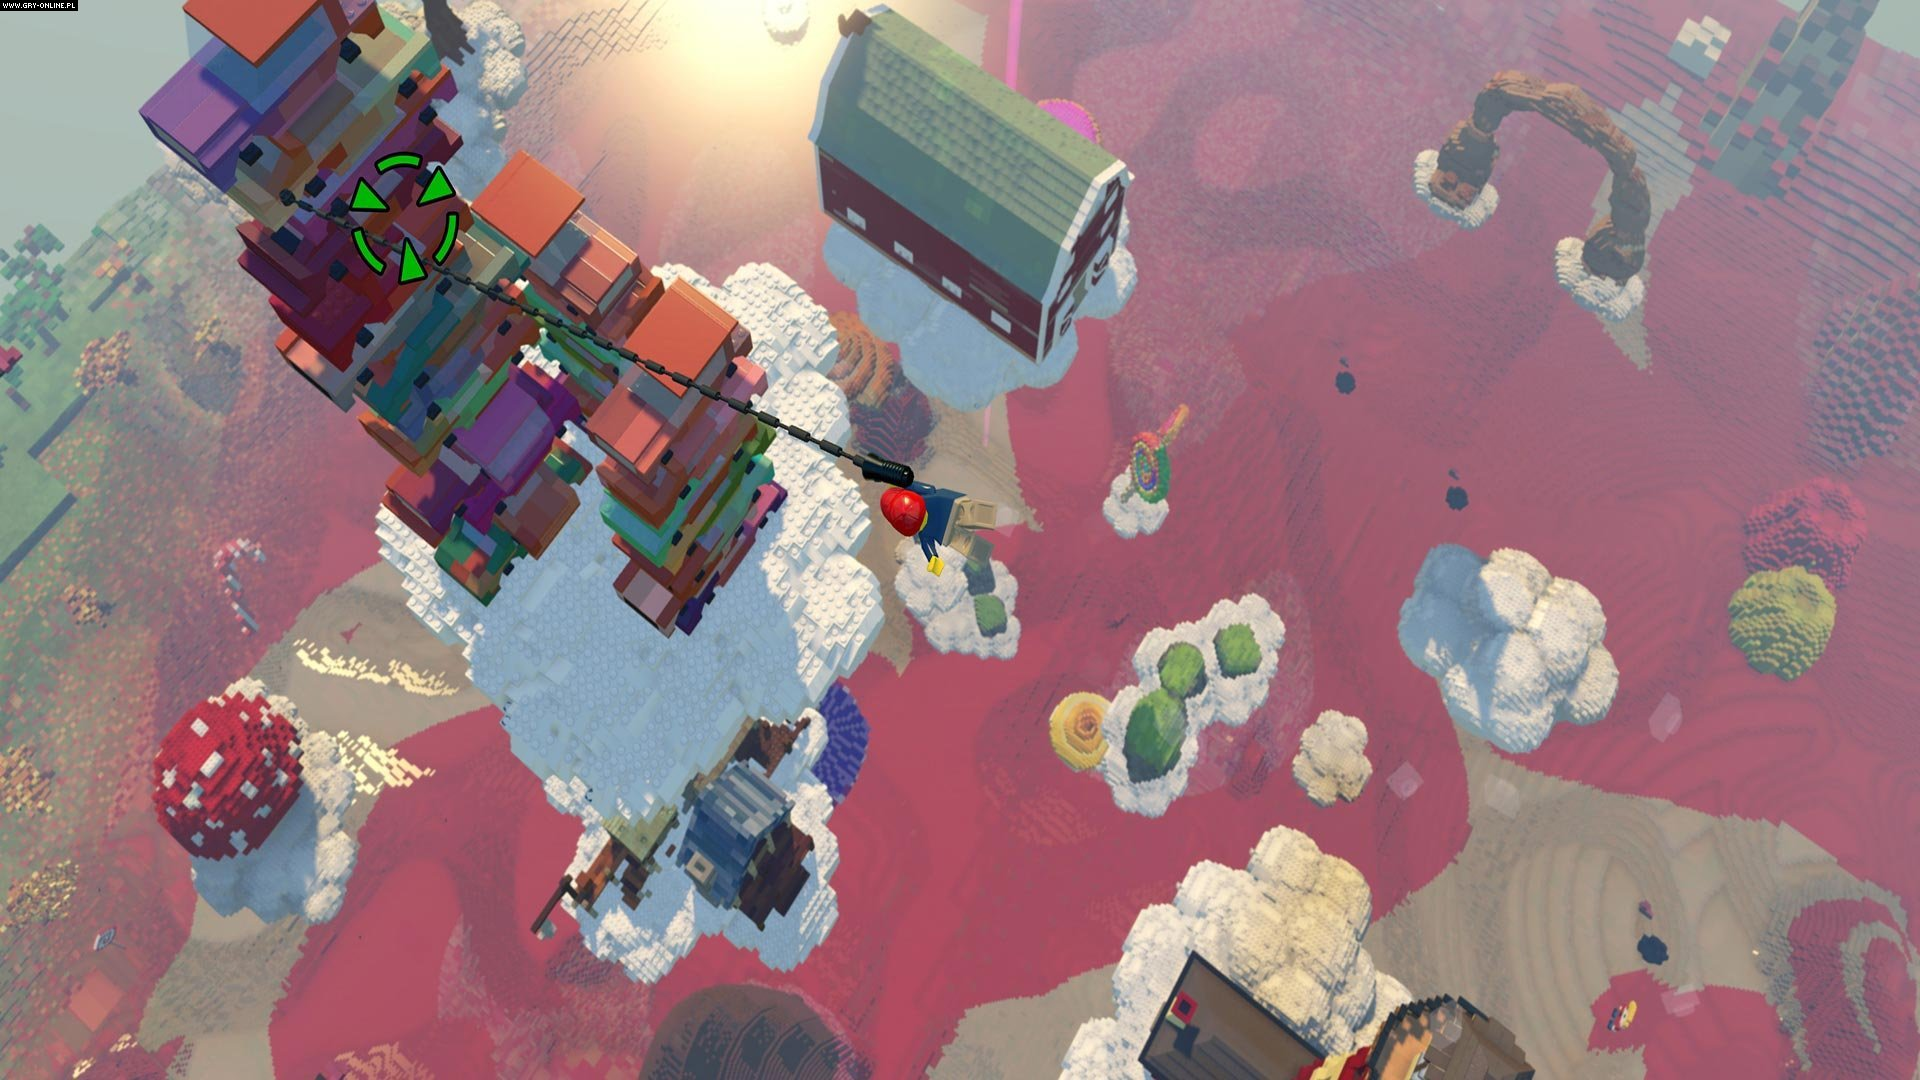 LEGO Worlds PC, PS4, XONE Games Image 8/26, Traveller's Tales, Warner Bros. Interactive Entertainment